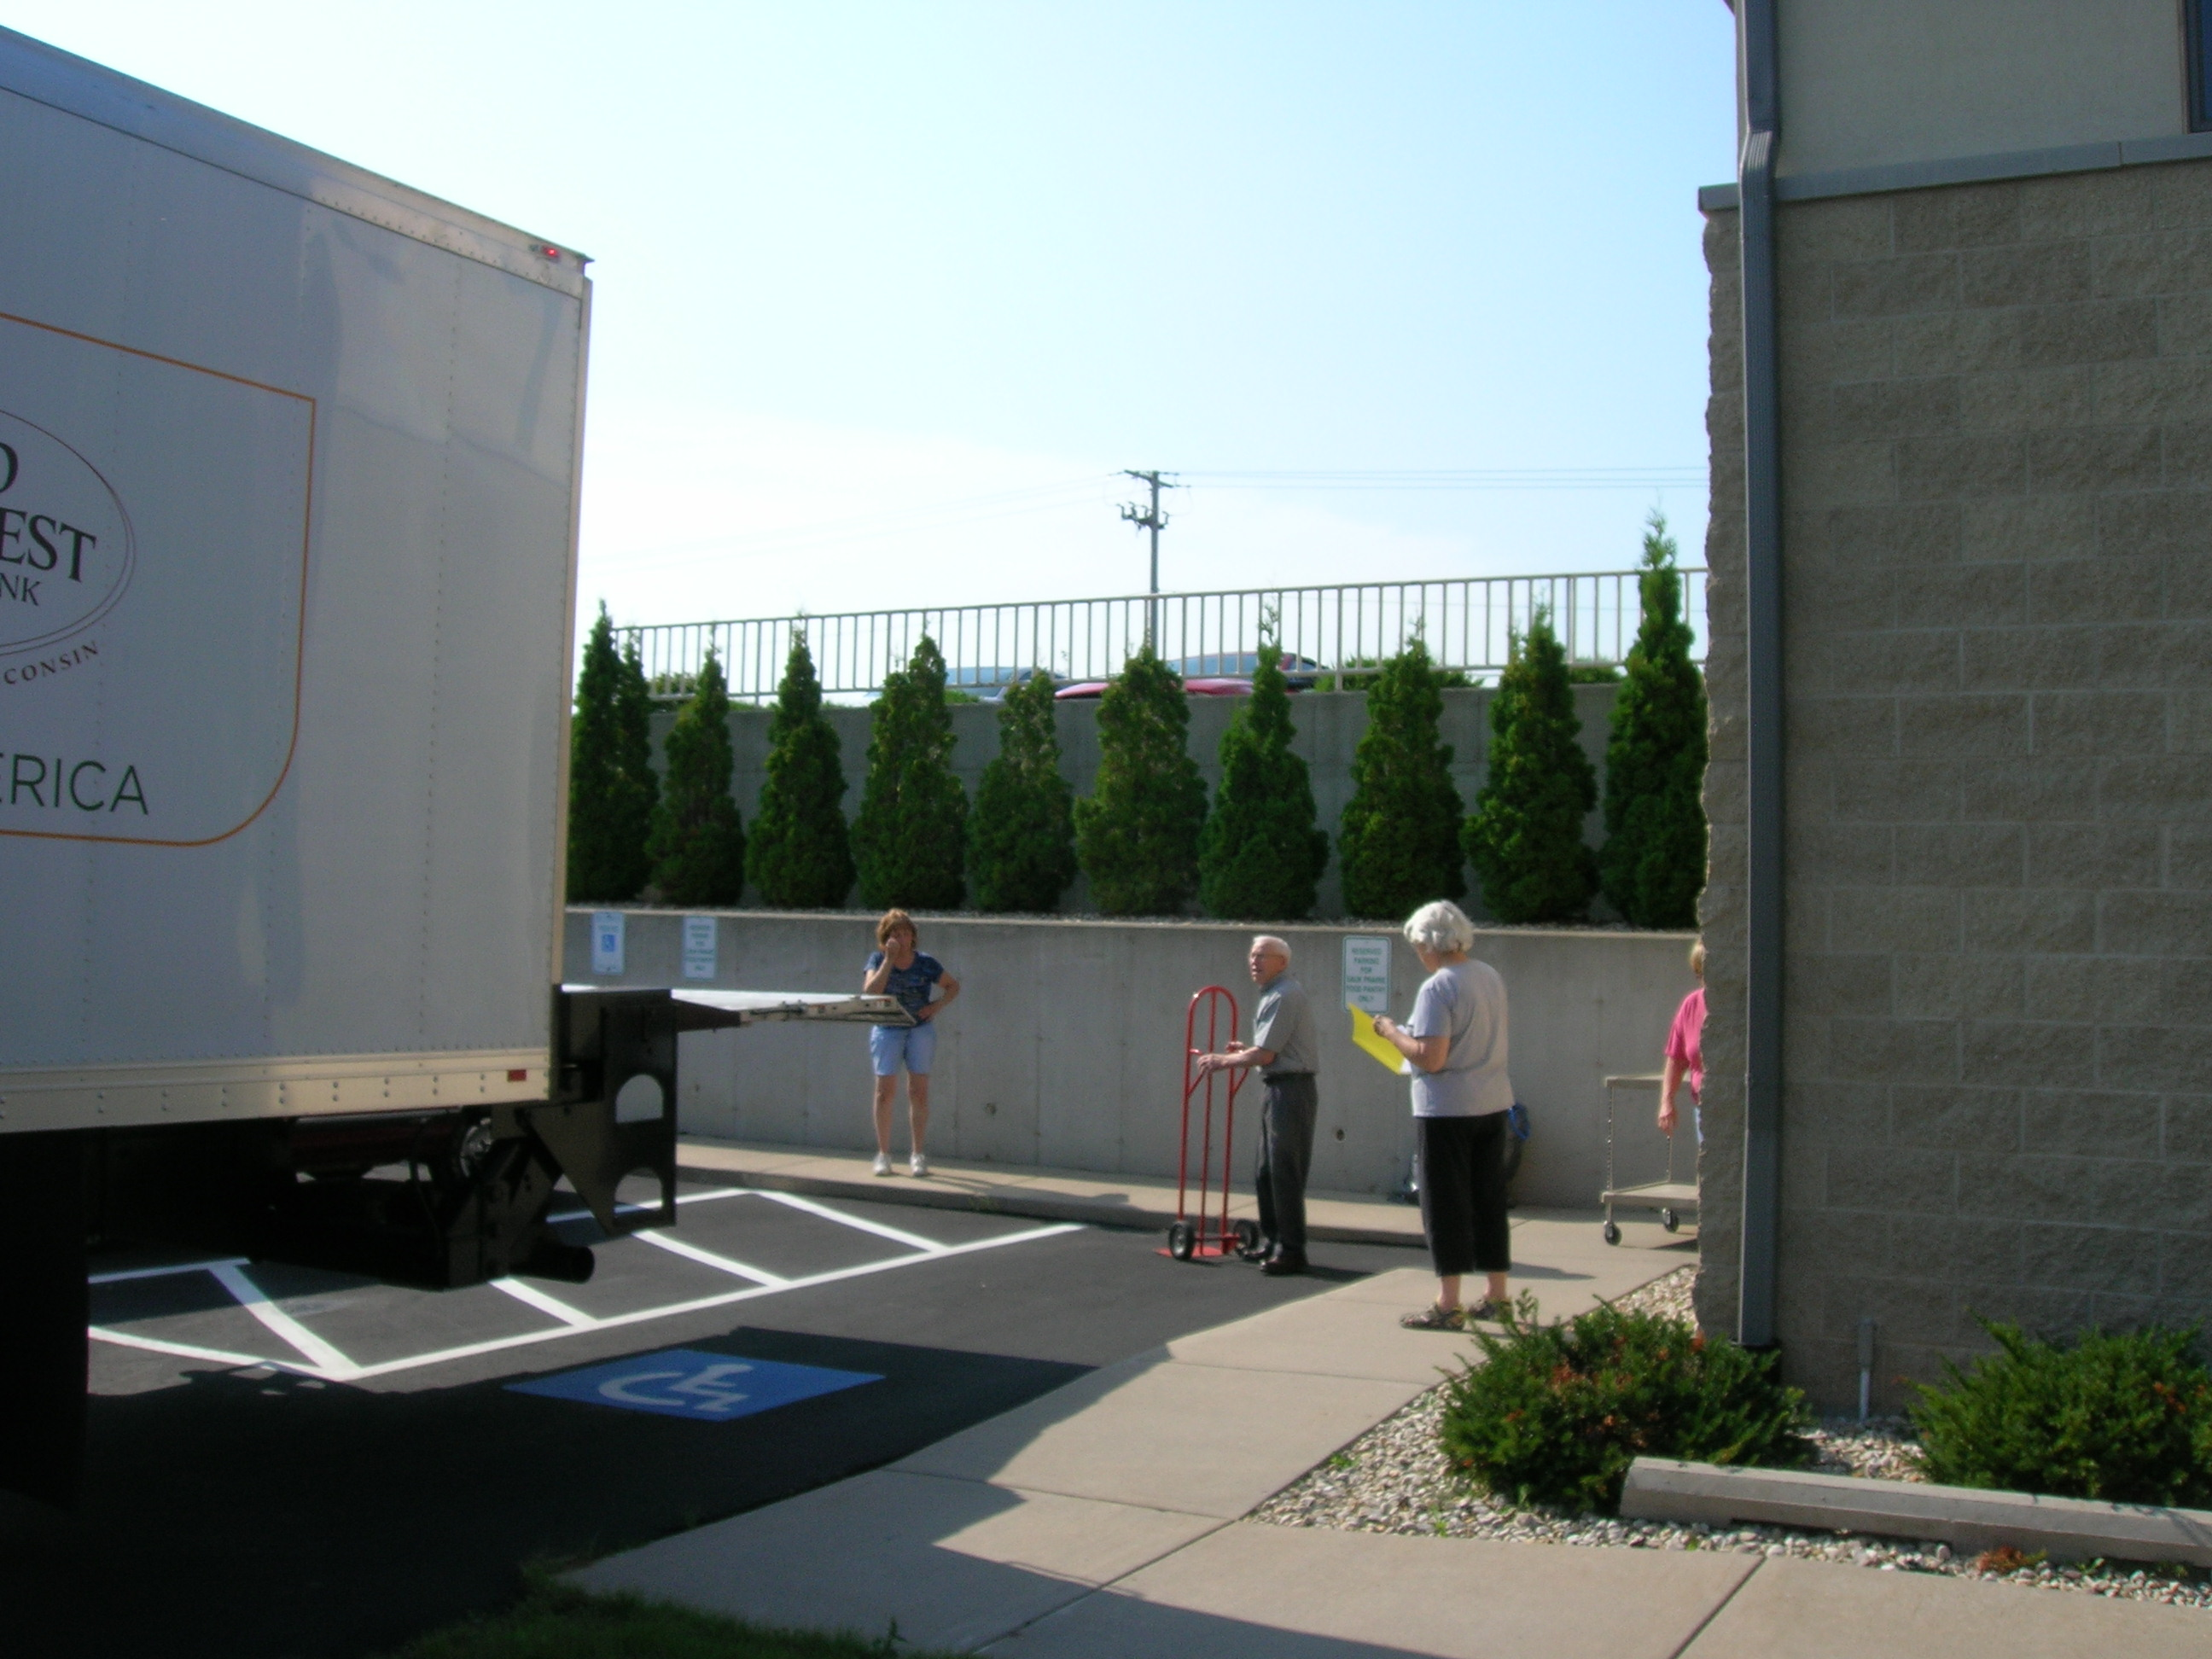 Receiving food from Second Harvest